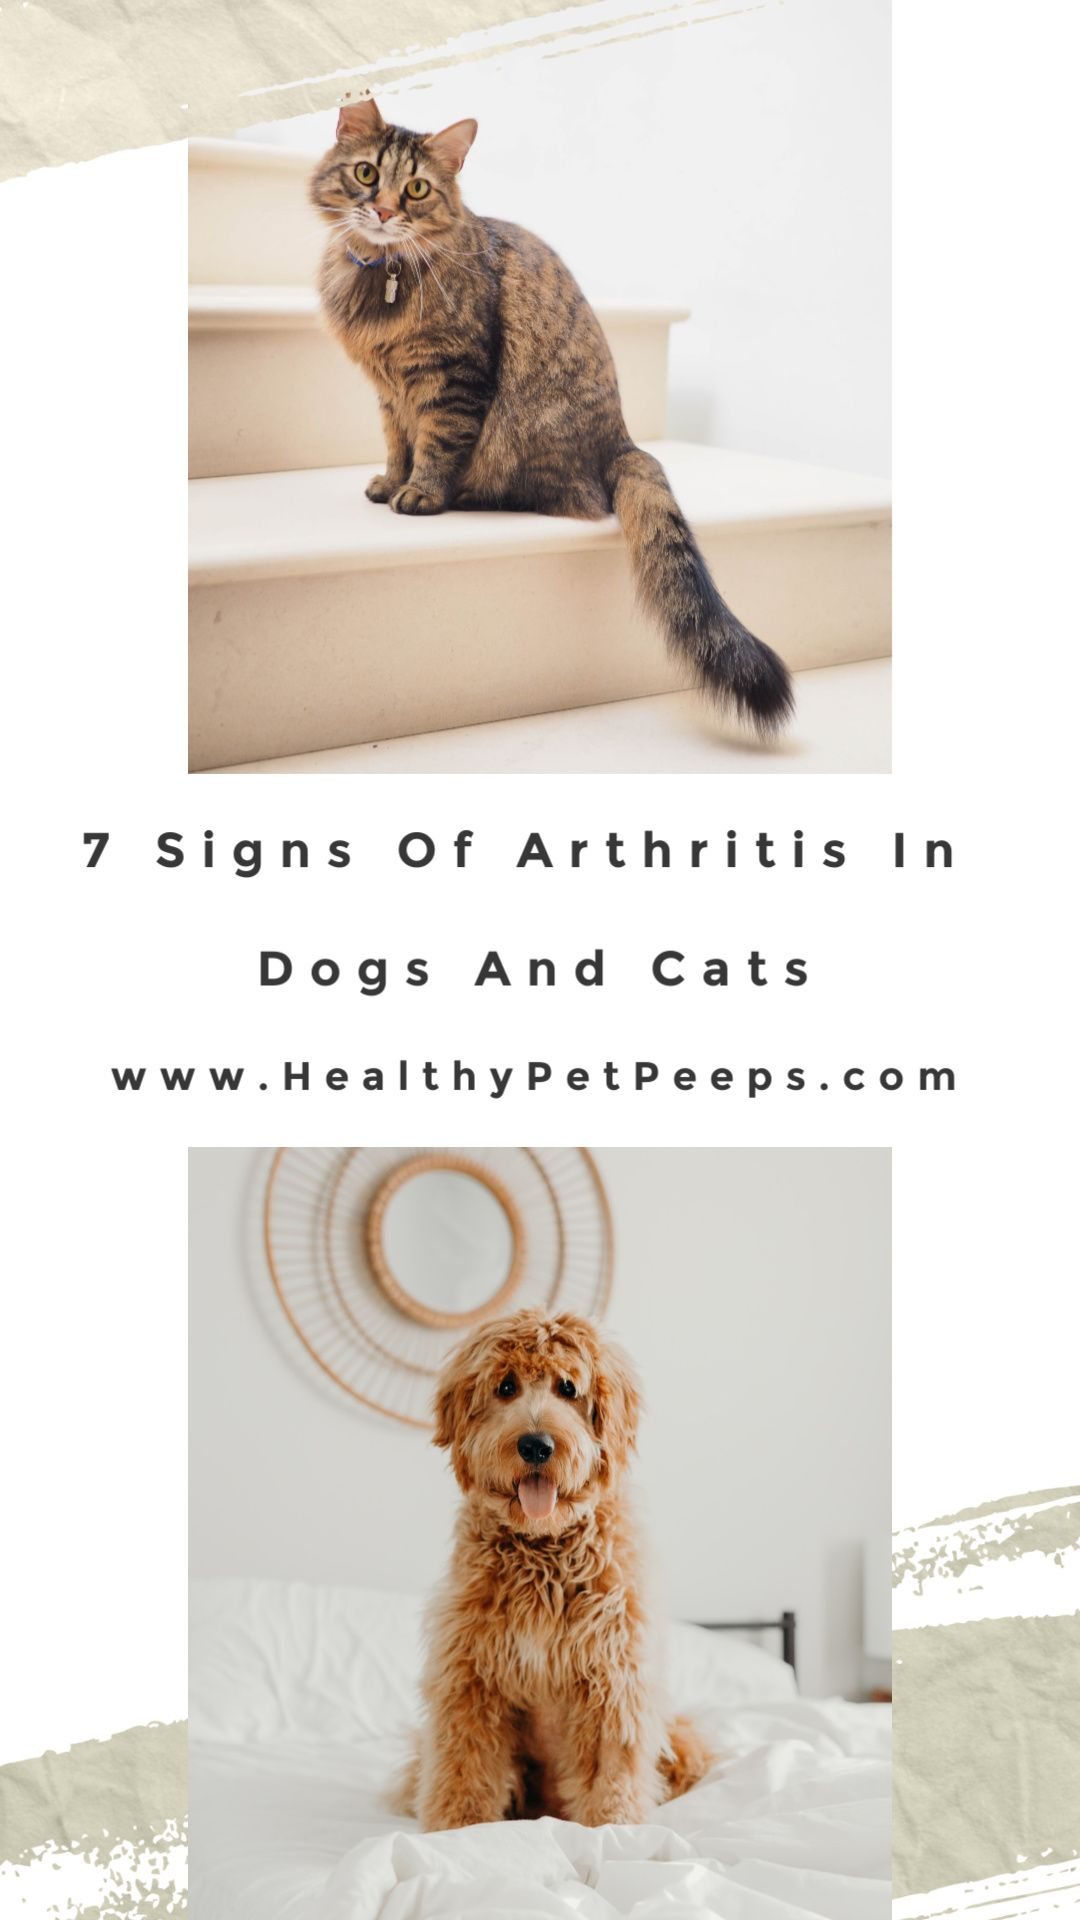 7 Signs Of Arthritis In Dogs And Cats In 2020 Dog Cat Cats And Kittens Cat Mom